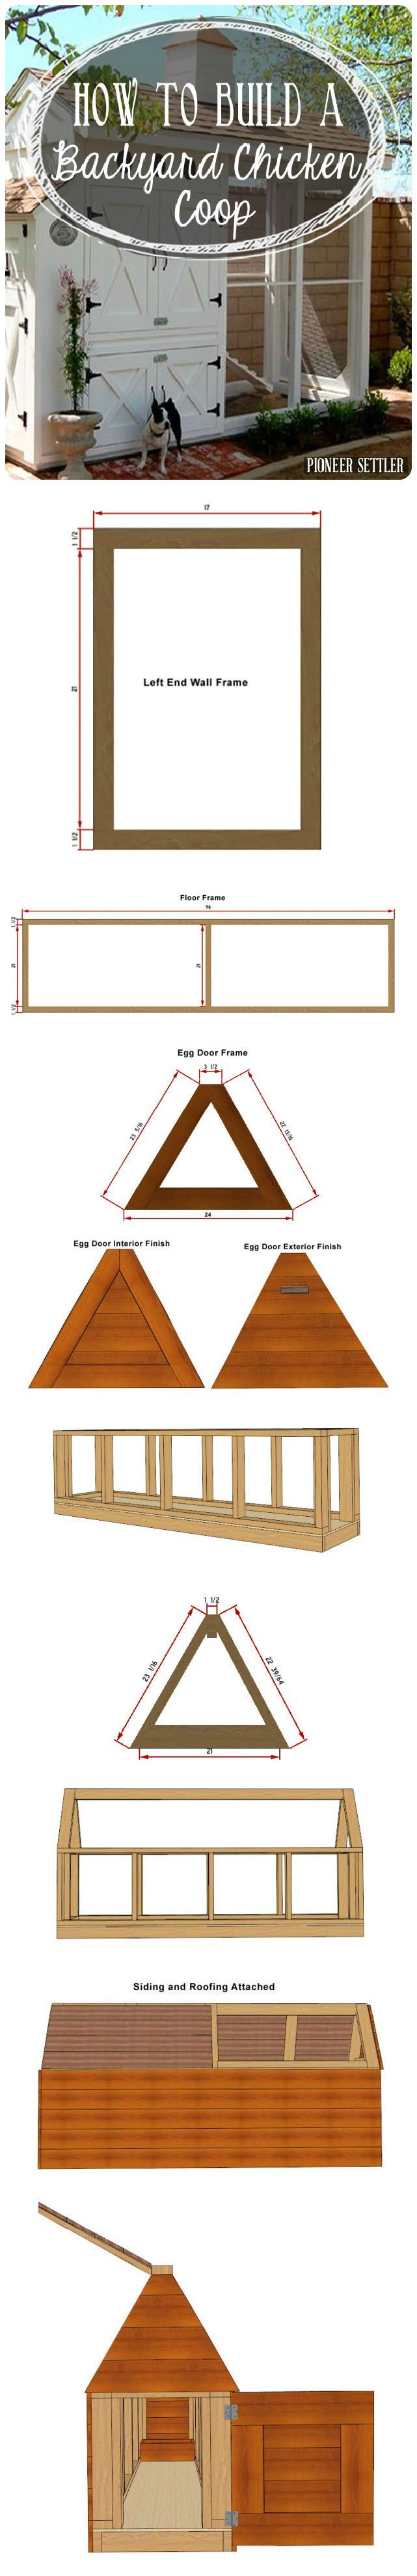 how to build a backyard chicken coop backyard chicken coops and